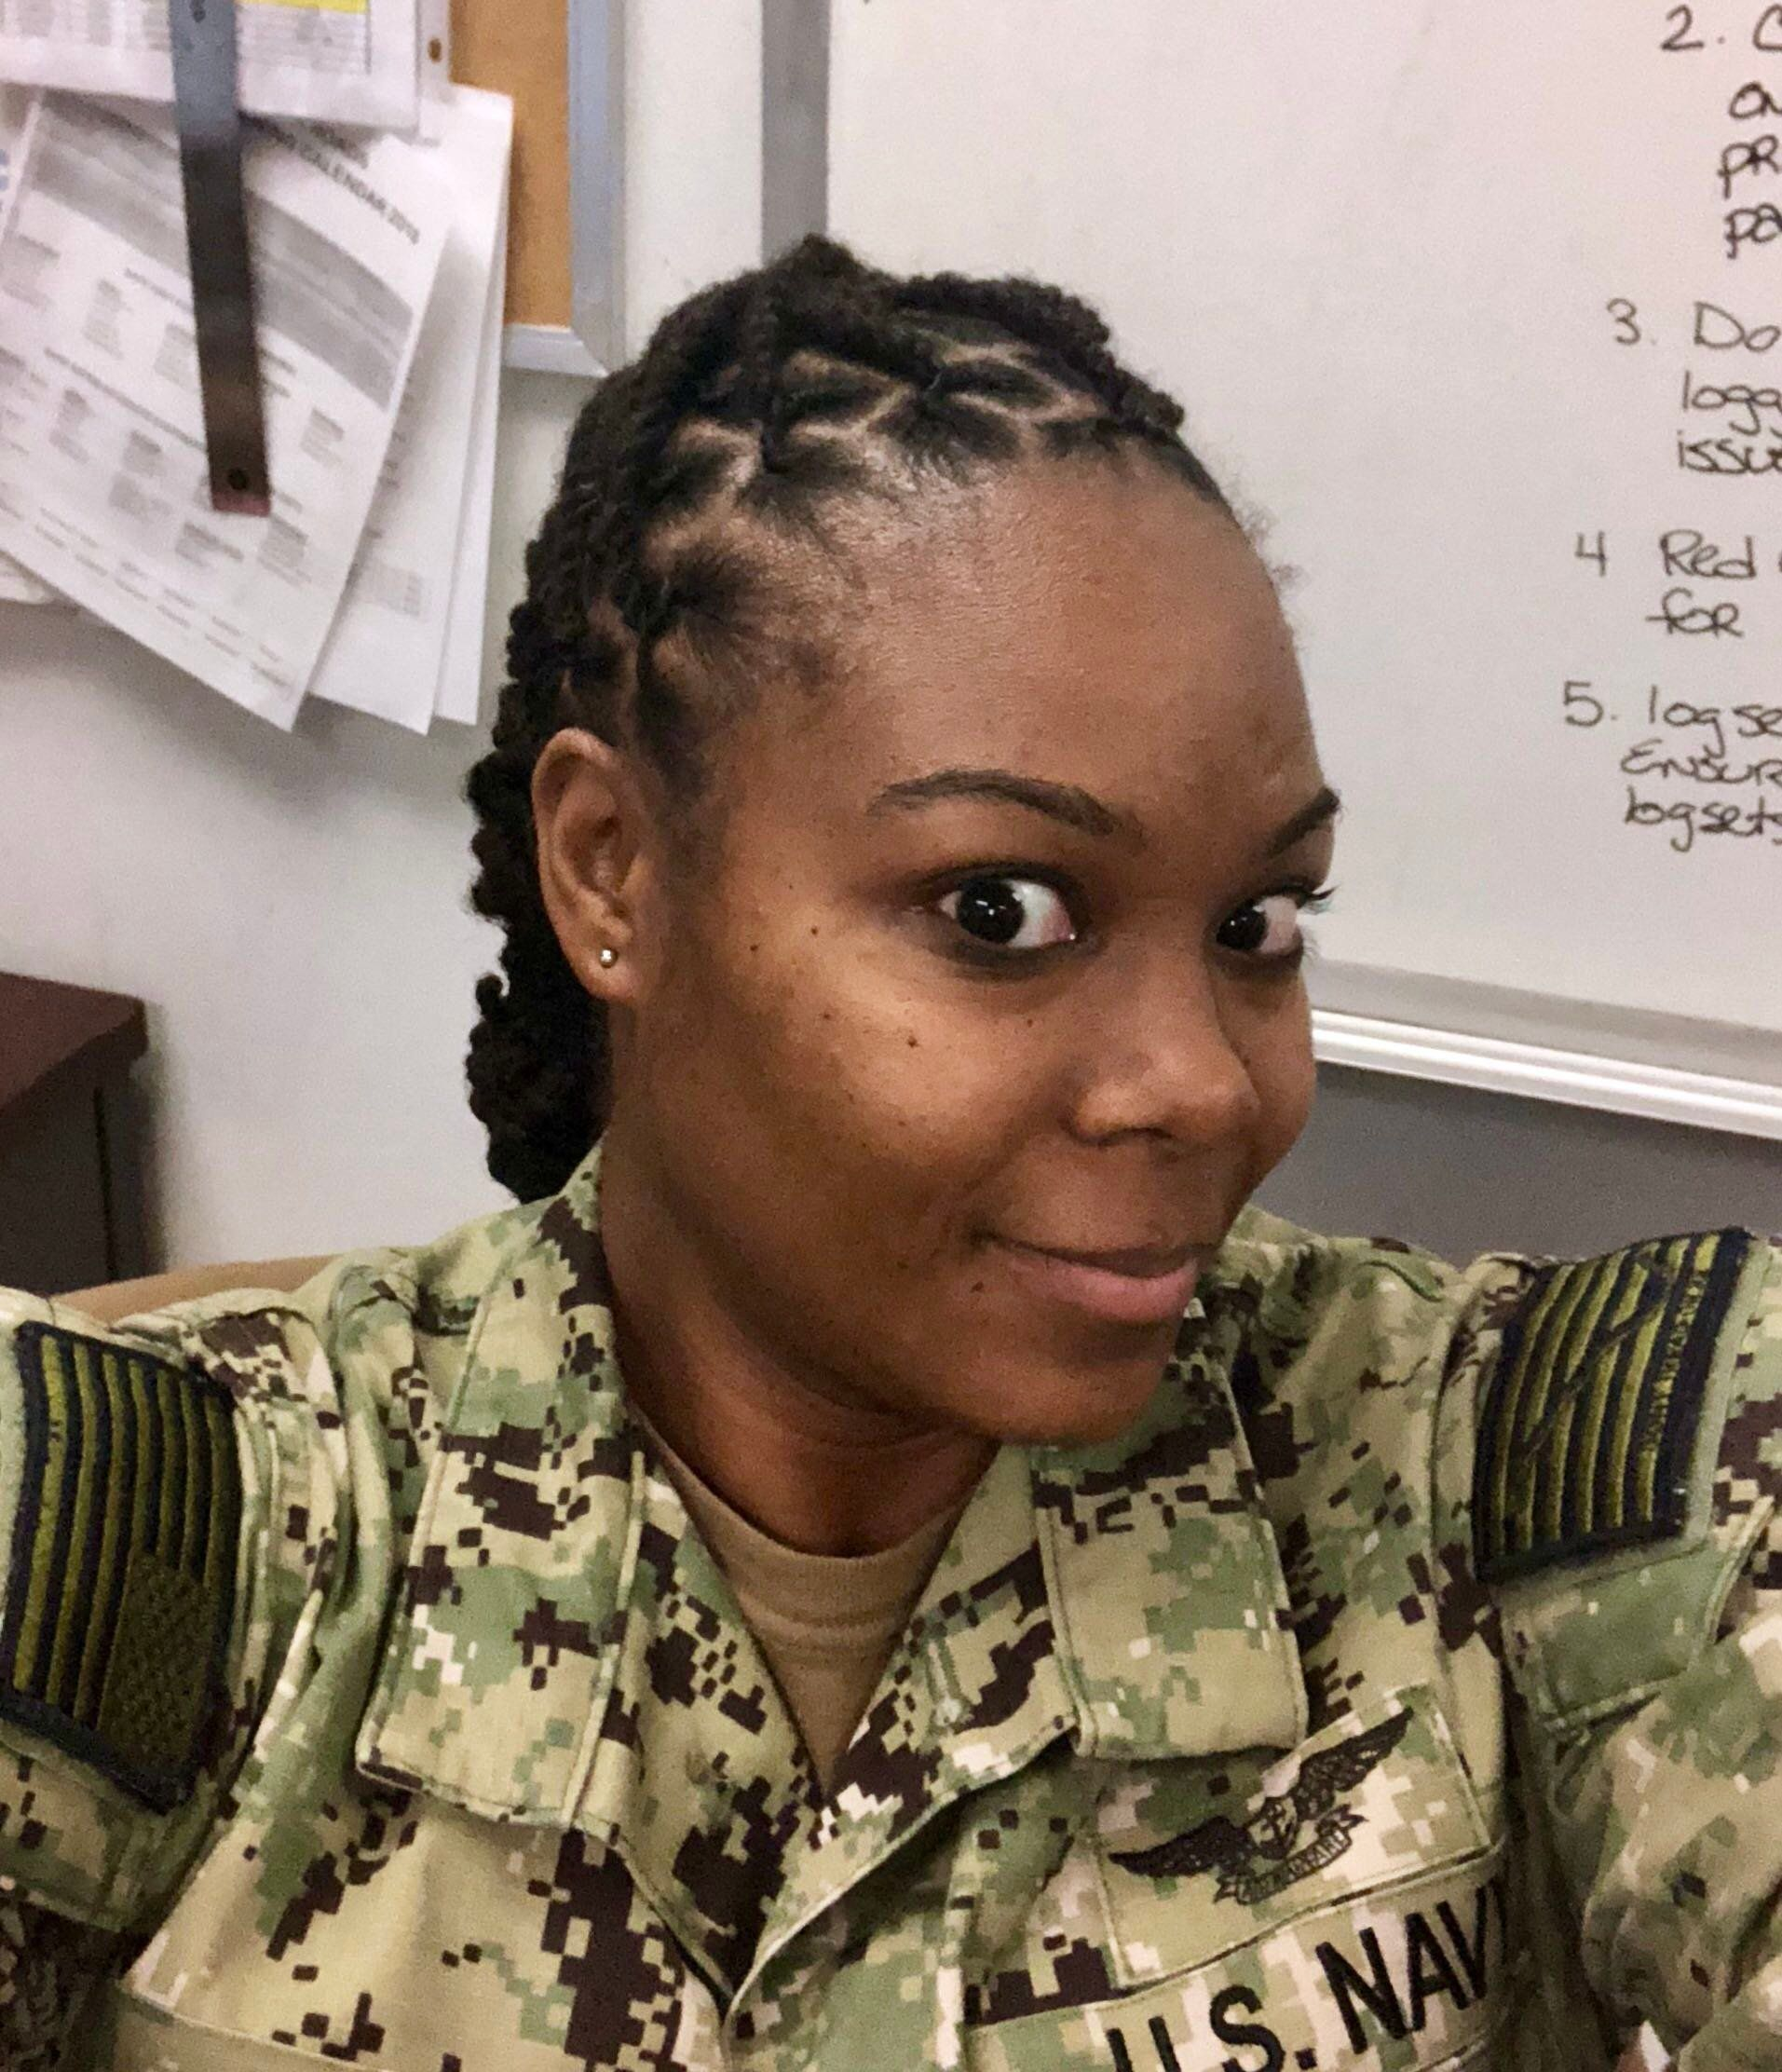 Petty Officer 1st Class Jacqueline Leak hid her dreadlocks under a wig for years before fighting to lift the Navys dreadlock ban She was one of six working group members tasked with recommending updates to the Navys grooming regulations